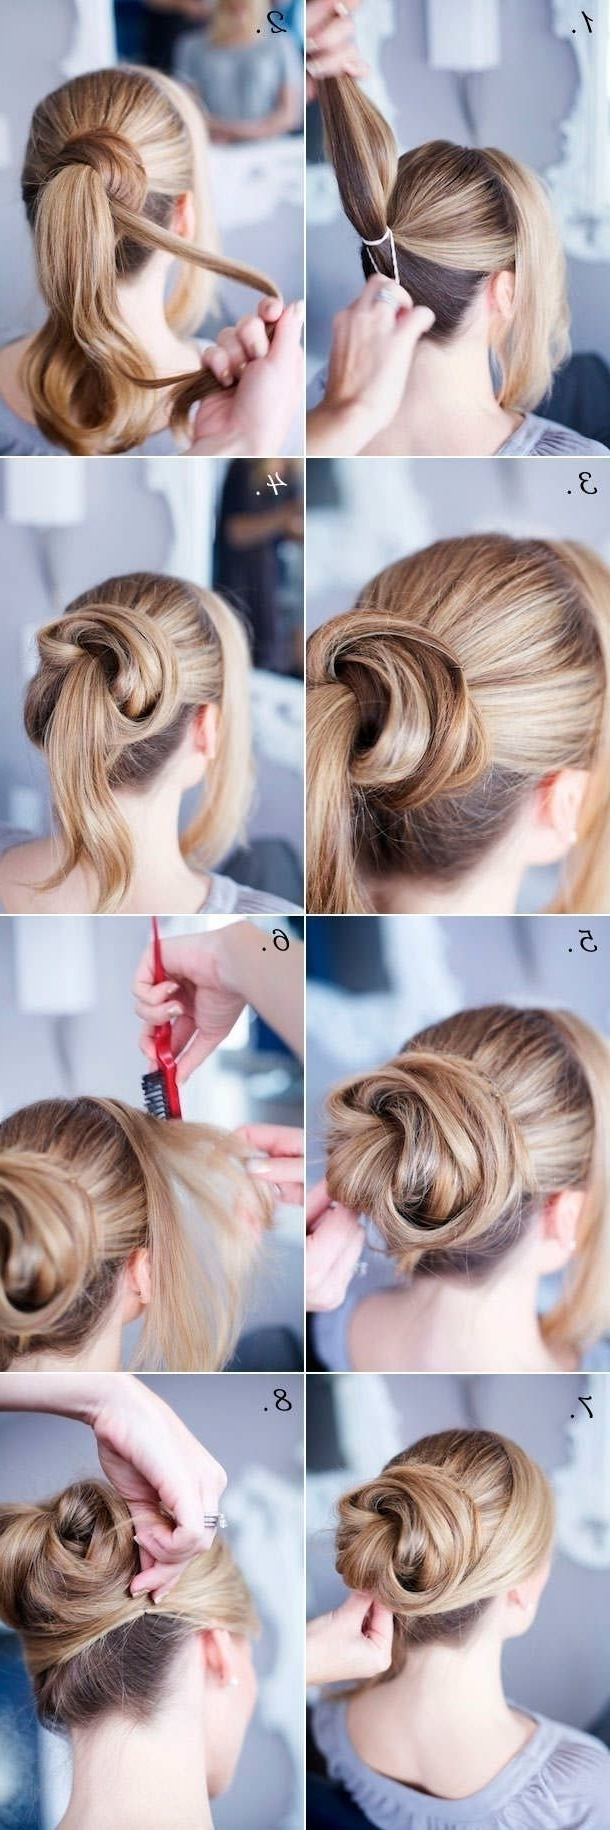 Cute Easy Updo Hairstyles For Long Hair – Women Medium Haircut Regarding Quick Easy Updo Hairstyles (View 13 of 15)